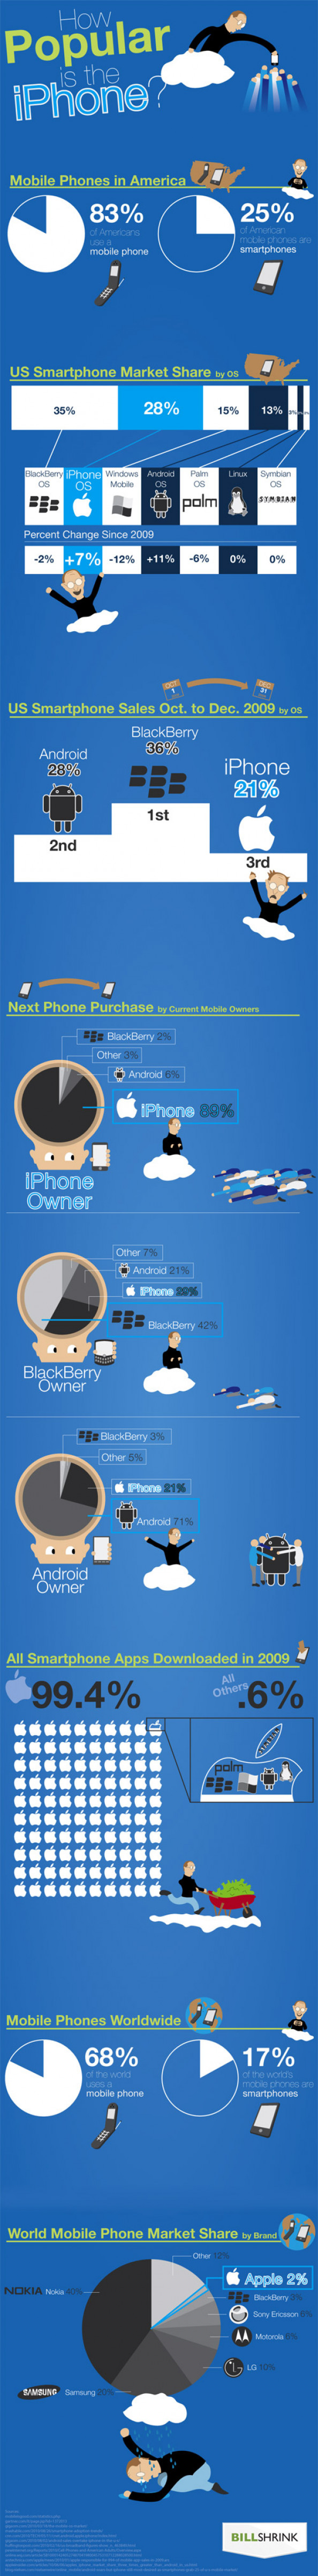 How Popular is the iPhone? Infographic